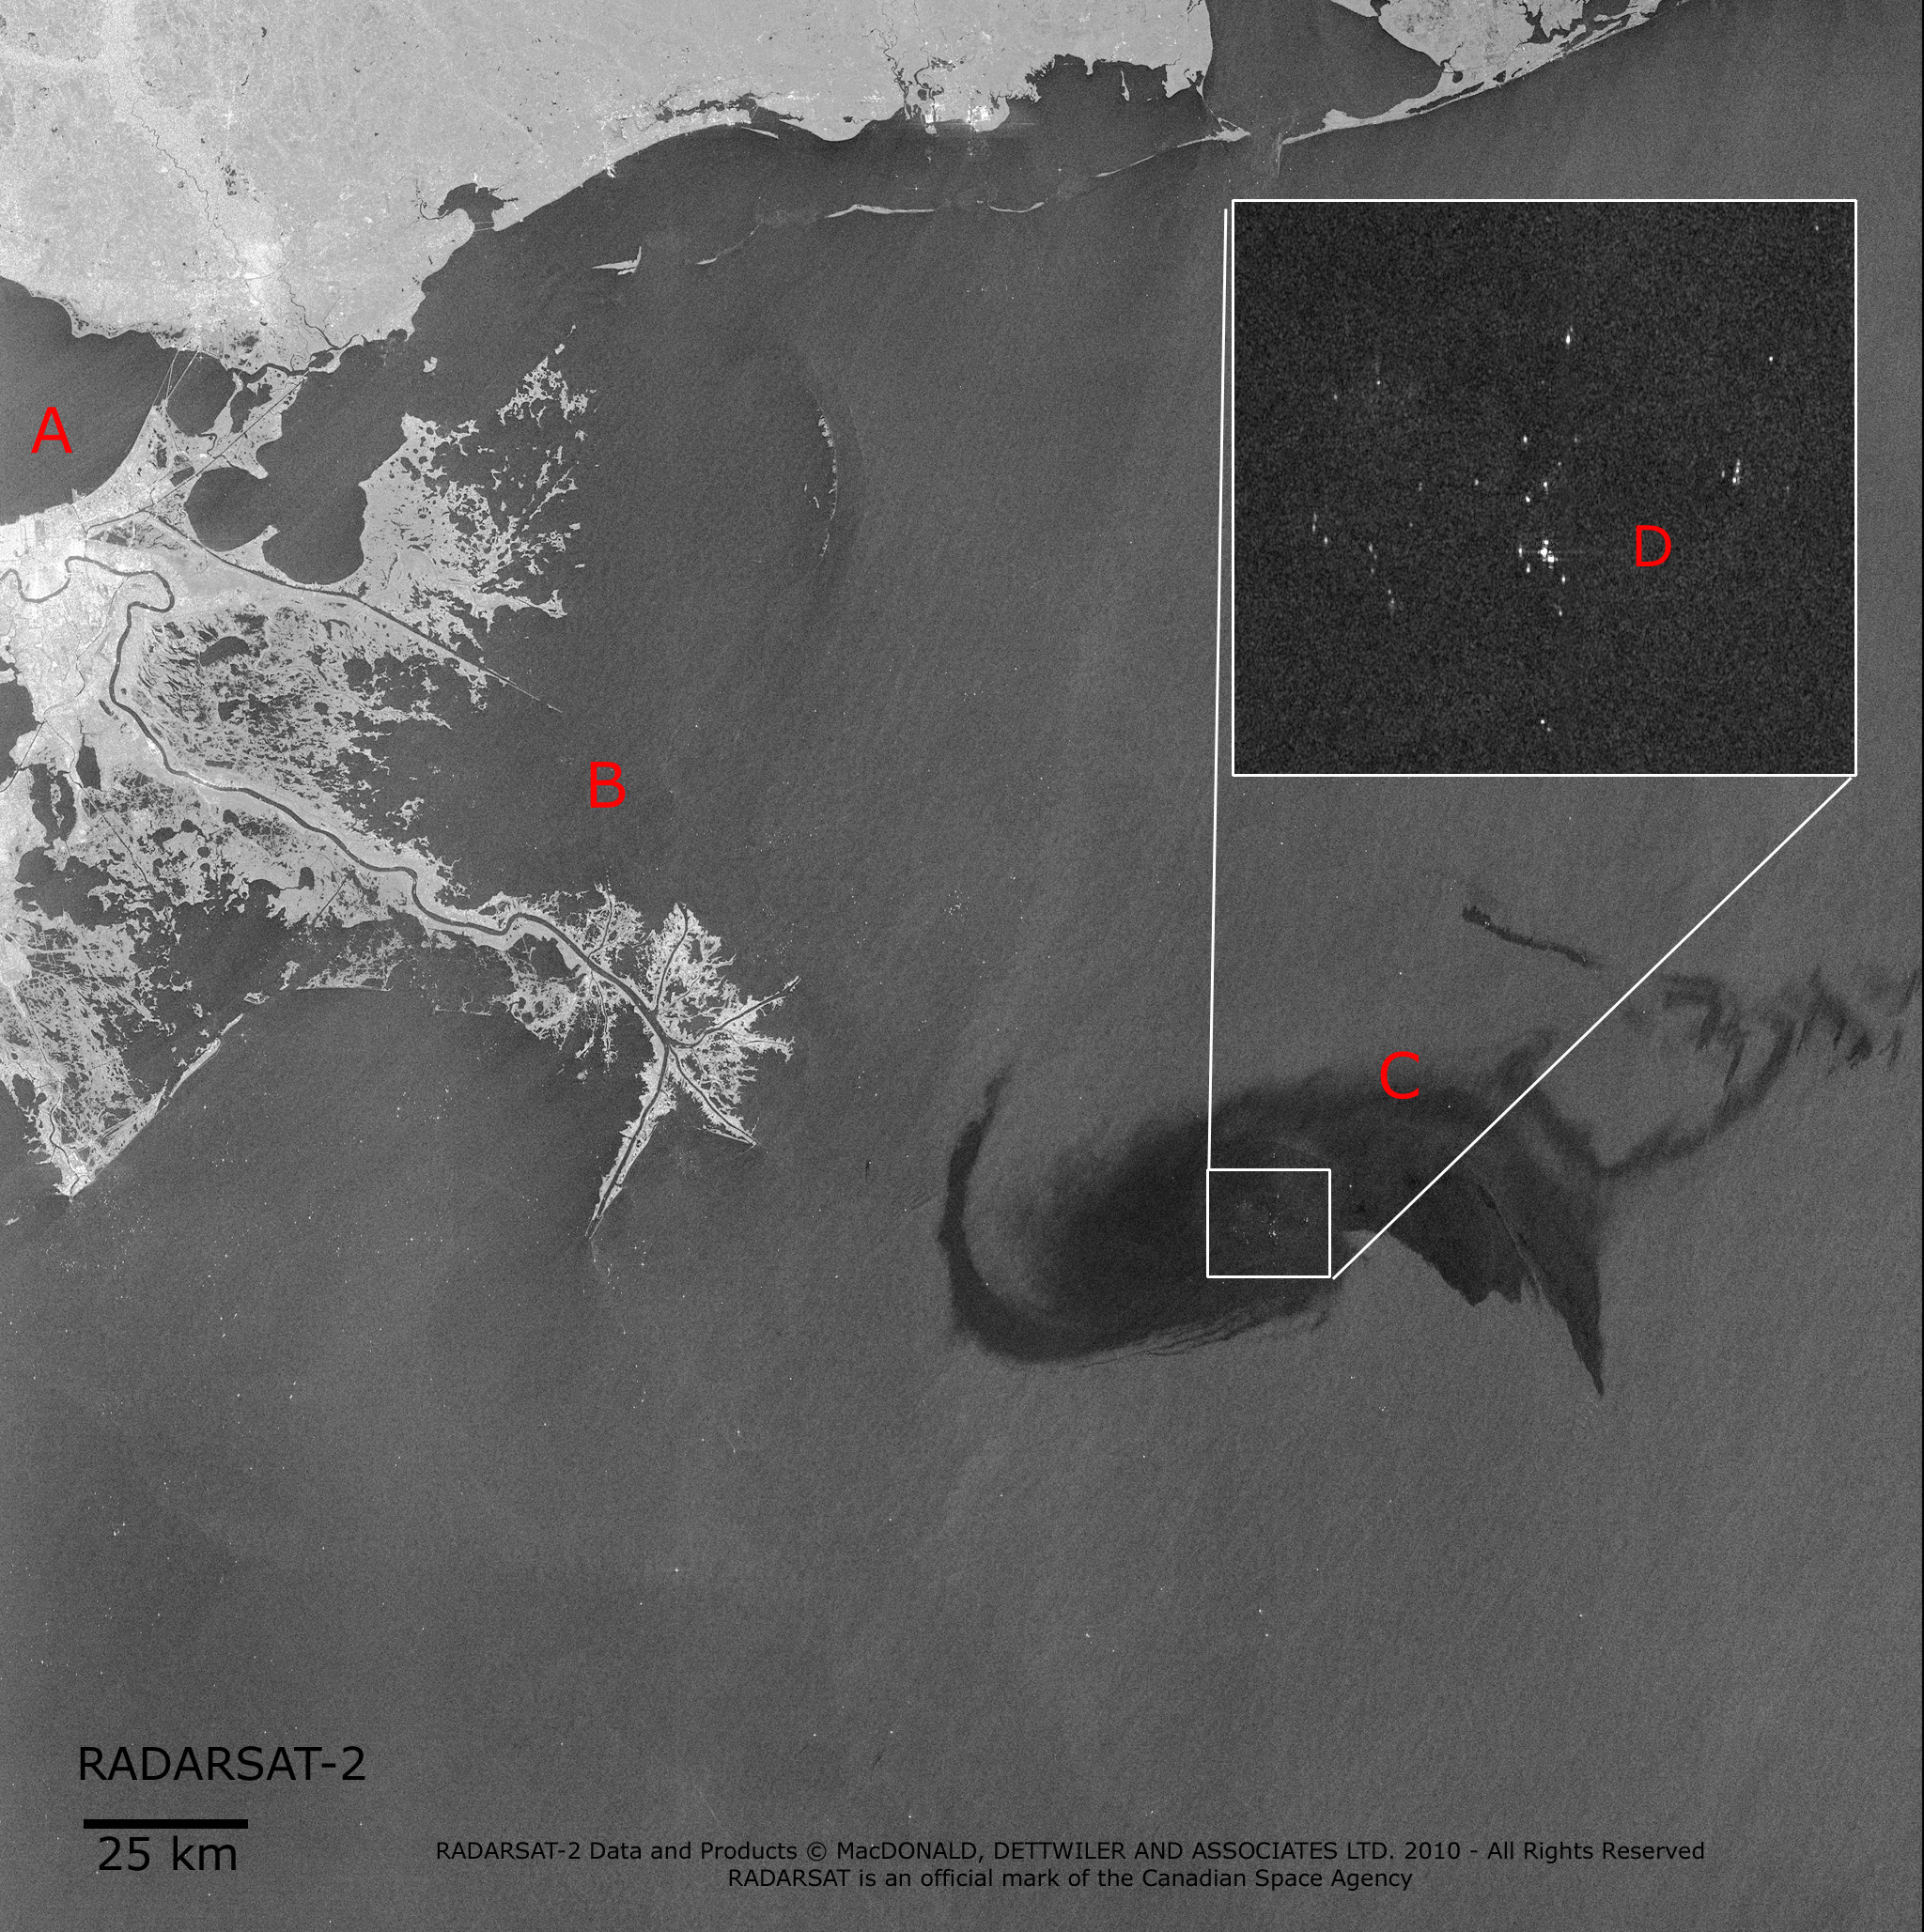 Map showing the oil spill in the Gulf of Mexico - Image acquired by RADARSAT-2 ScanSAR April 28, 2010.